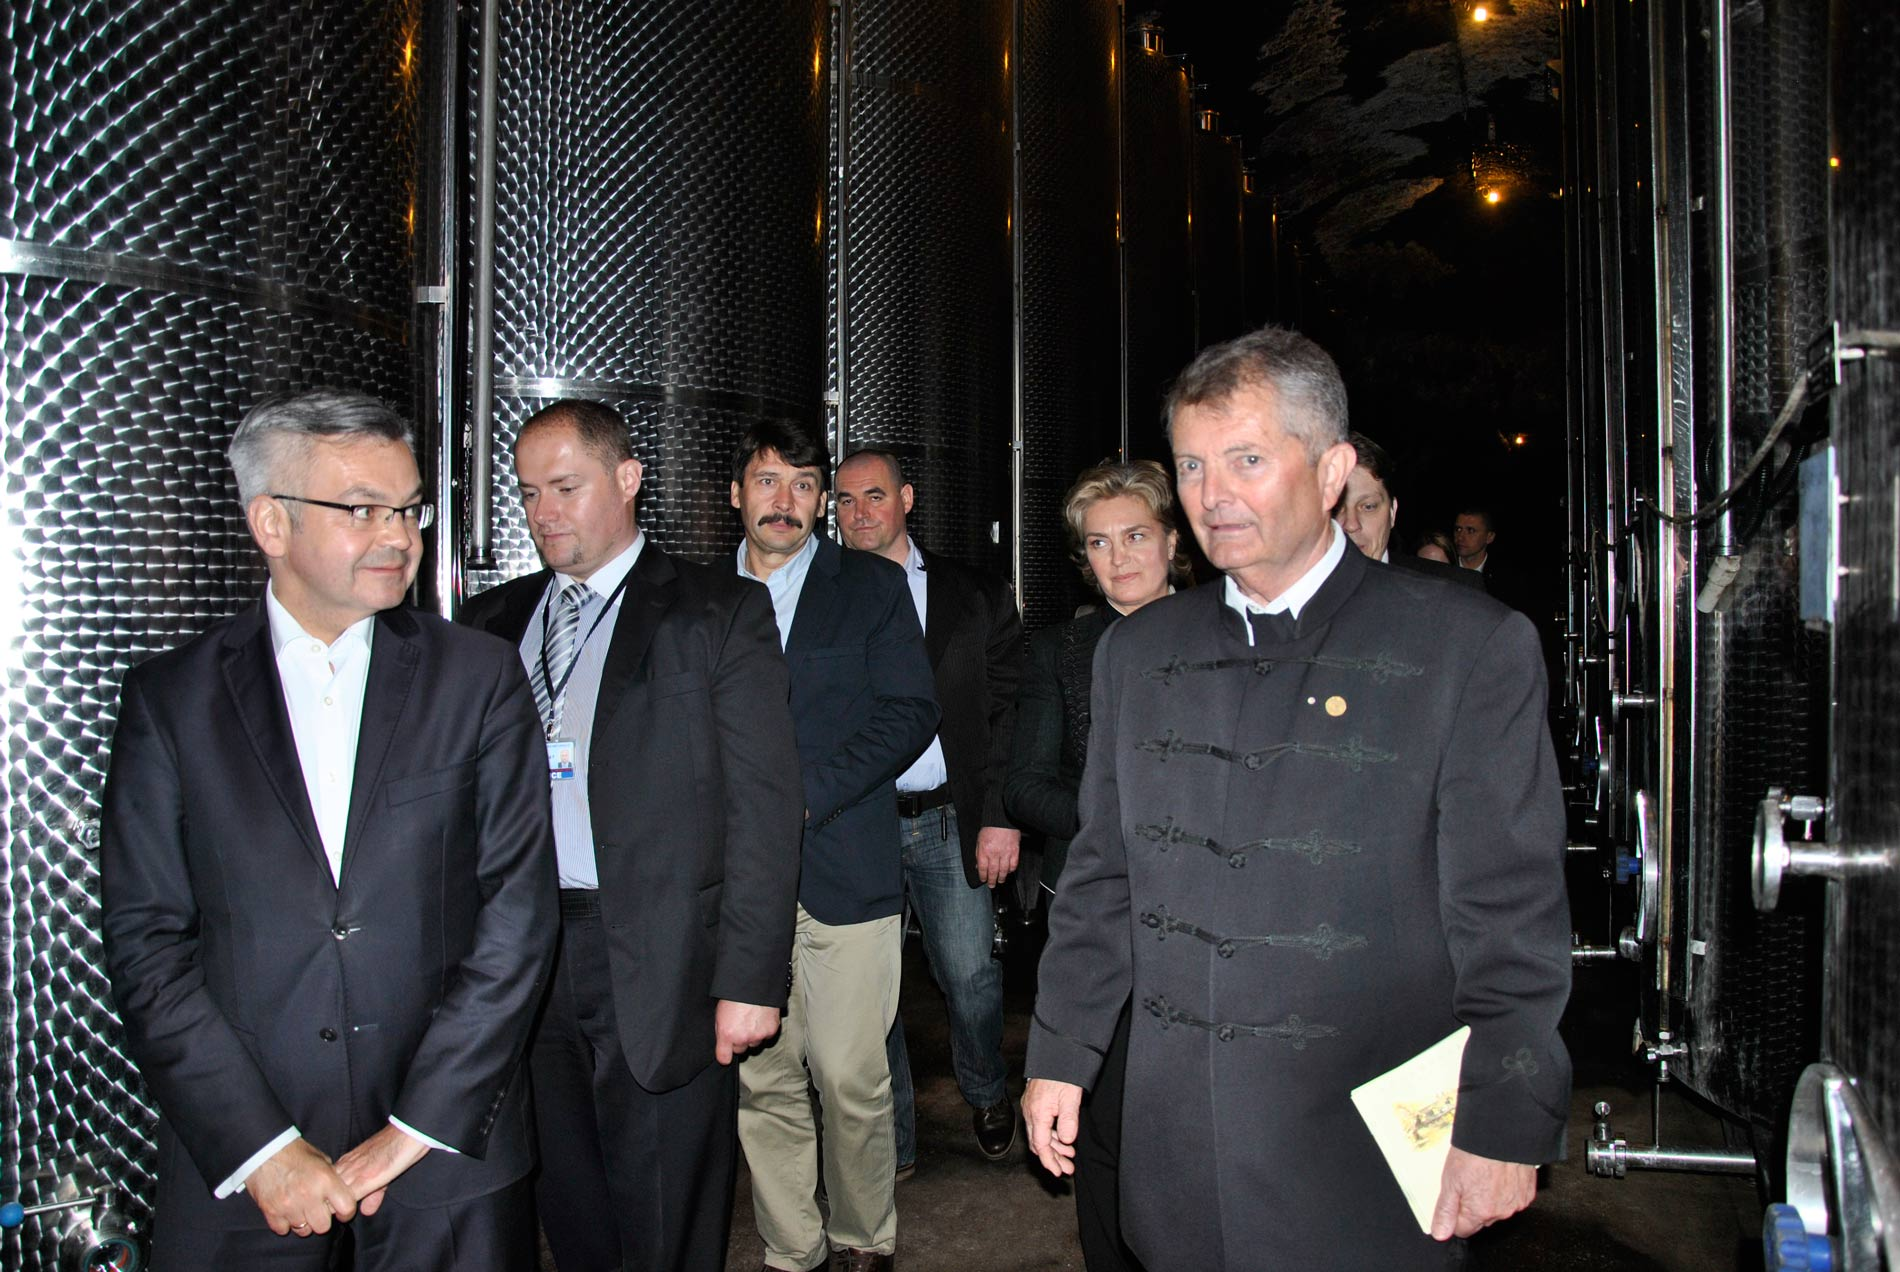 The President of Polish Republic and the President of Hungarian Republic in Thummerer Winery